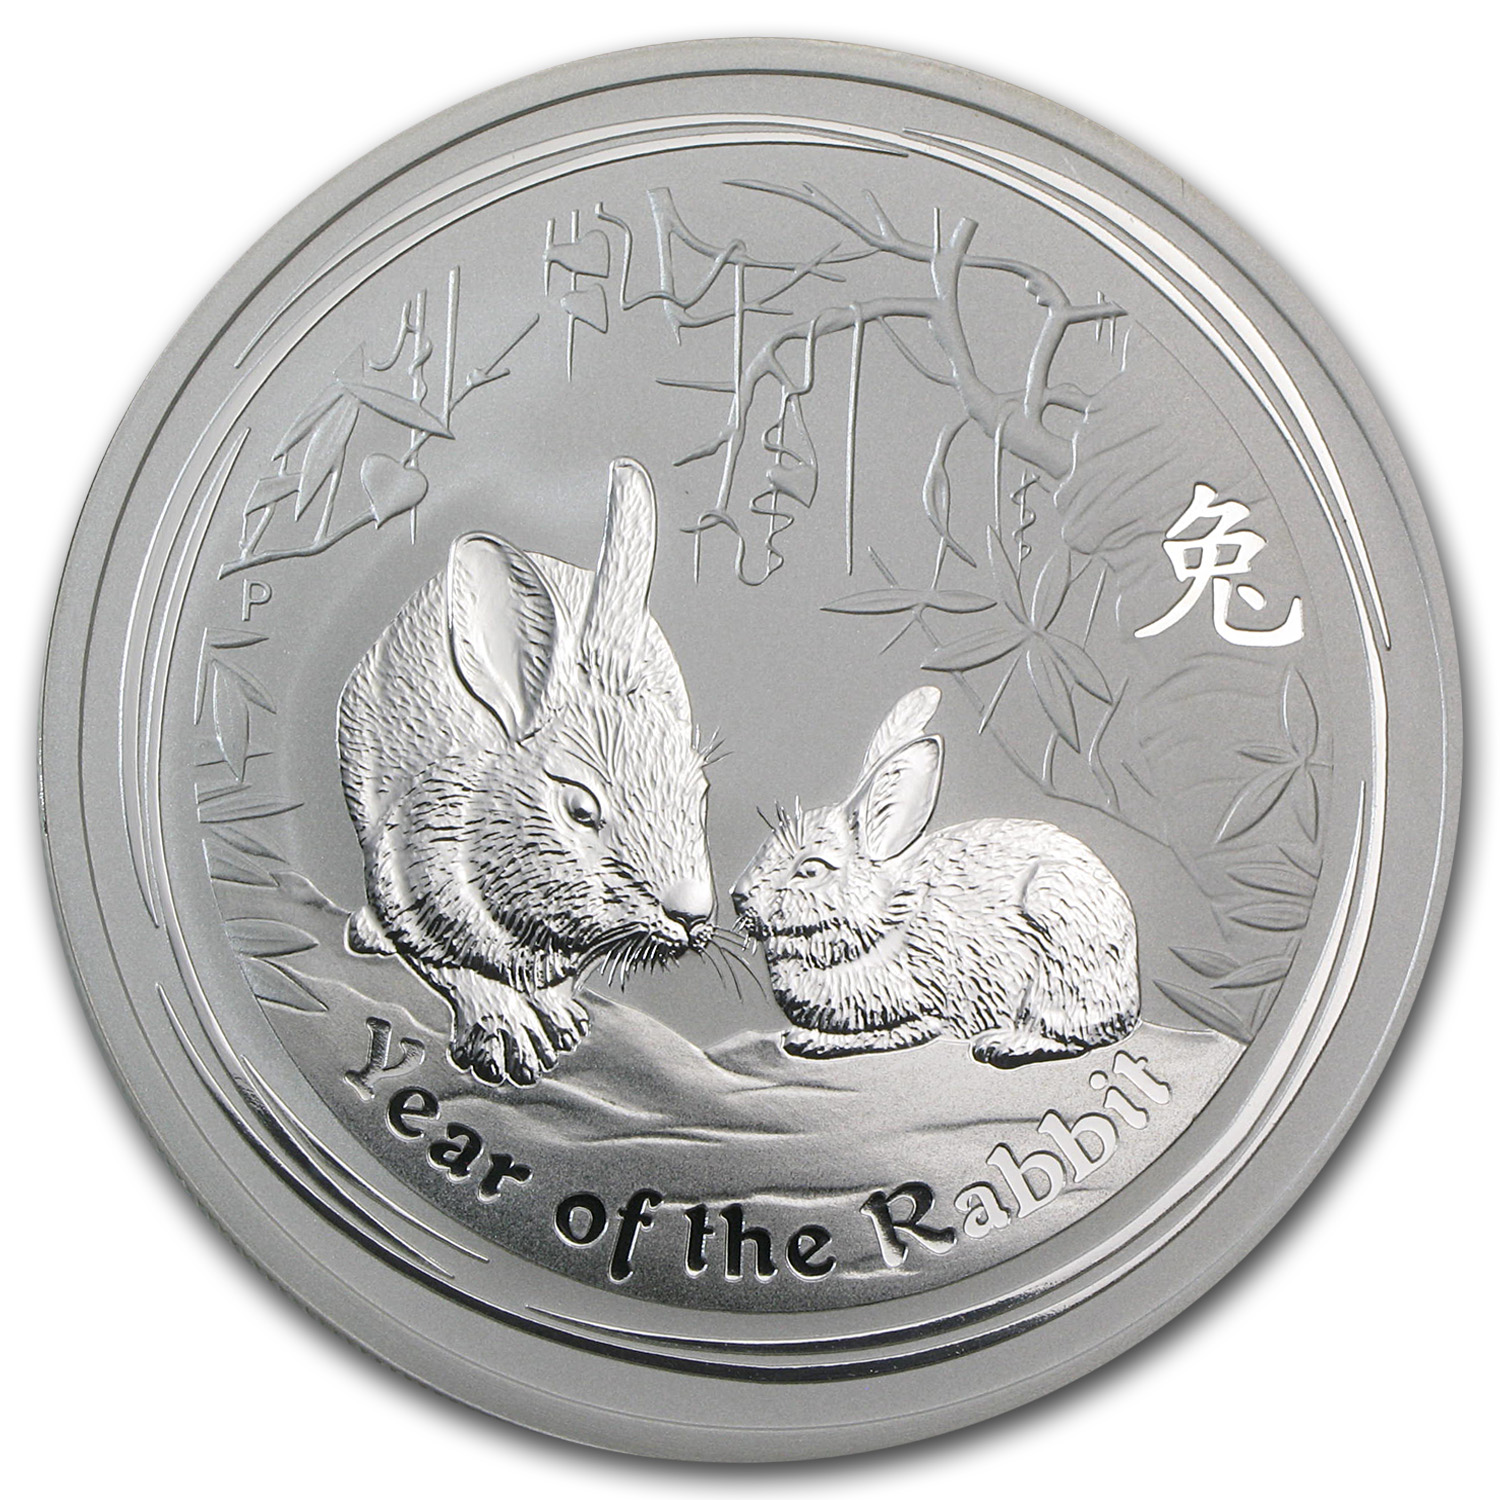 2011 2 oz Silver Australian Year of the Rabbit BU